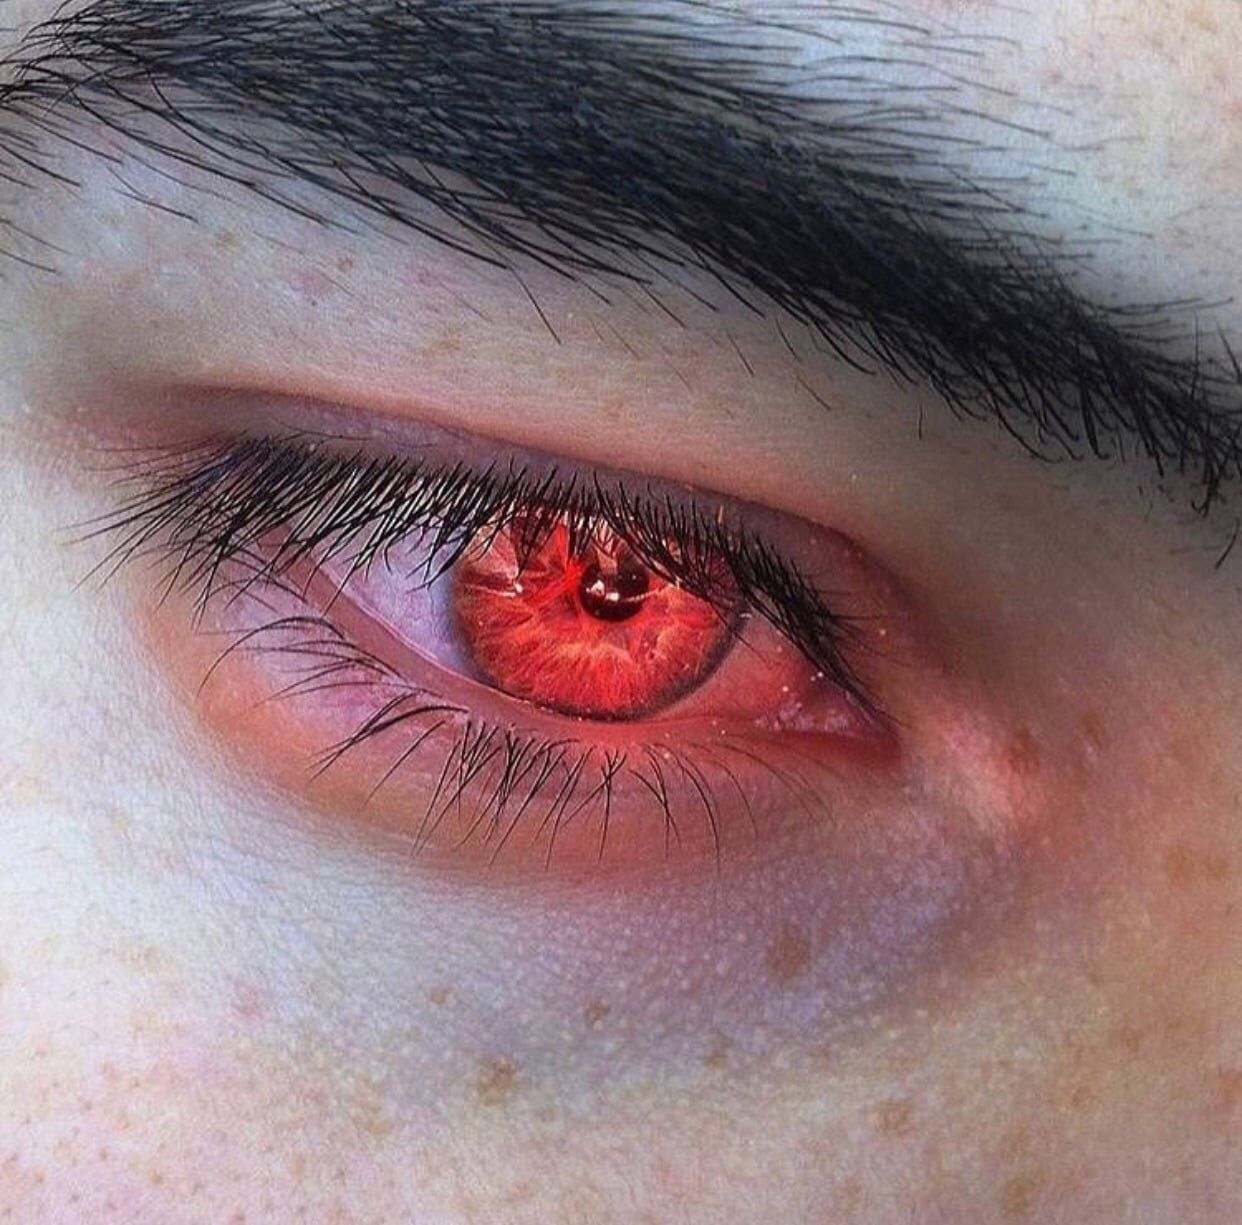 Pin By Mollymauk On Static Flatline Aesthetic Eyes Red Eyes